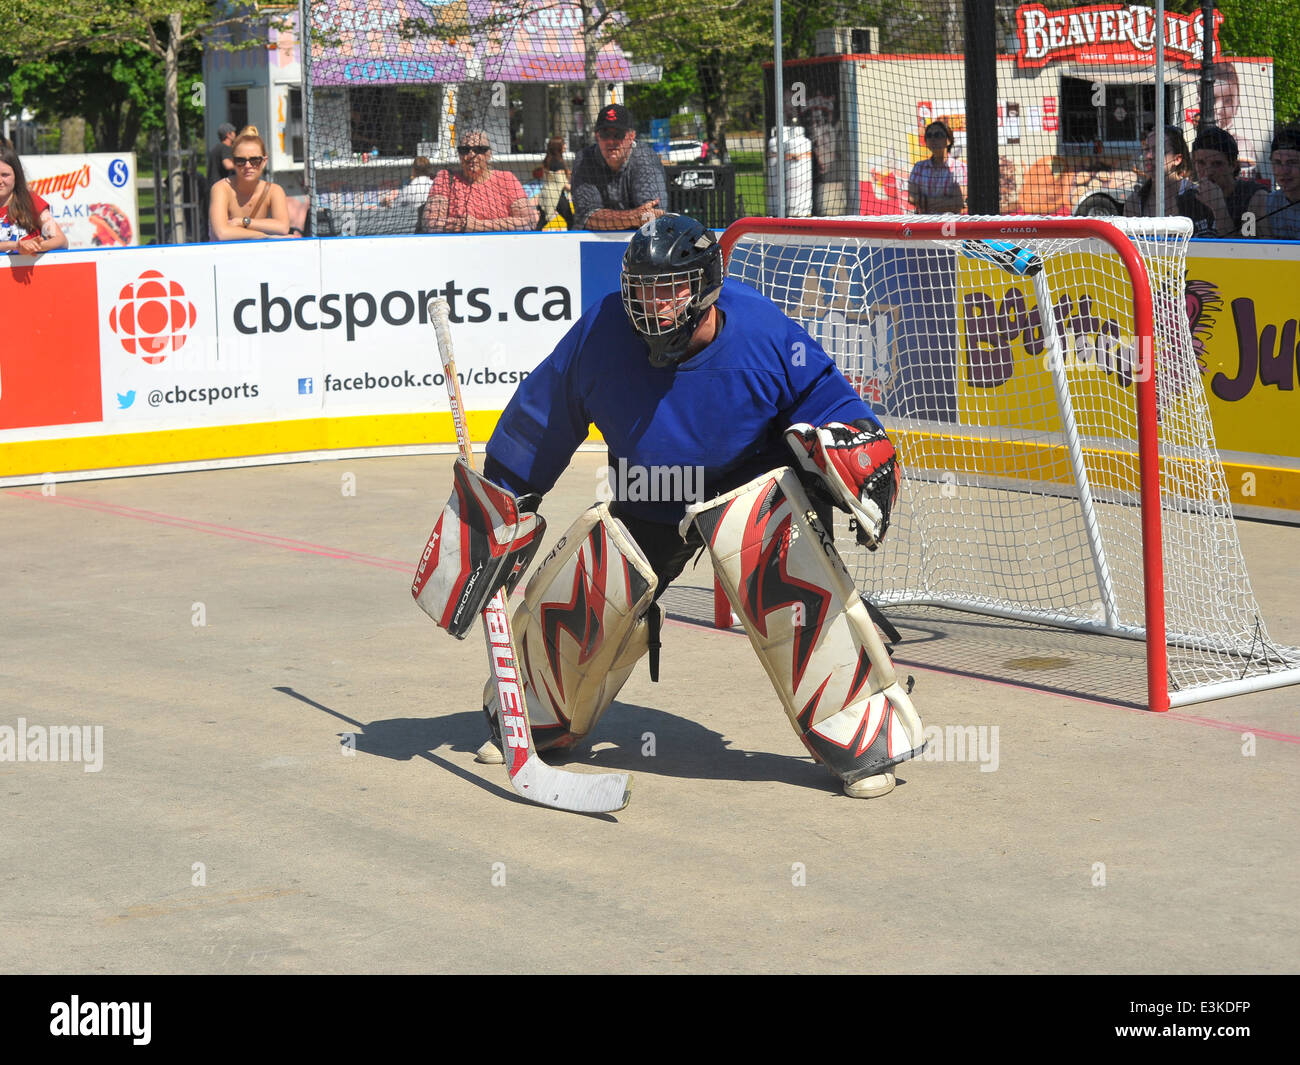 Images From A Play On Hockey Tournament Held In Victoria Park In London Ontario In Canada